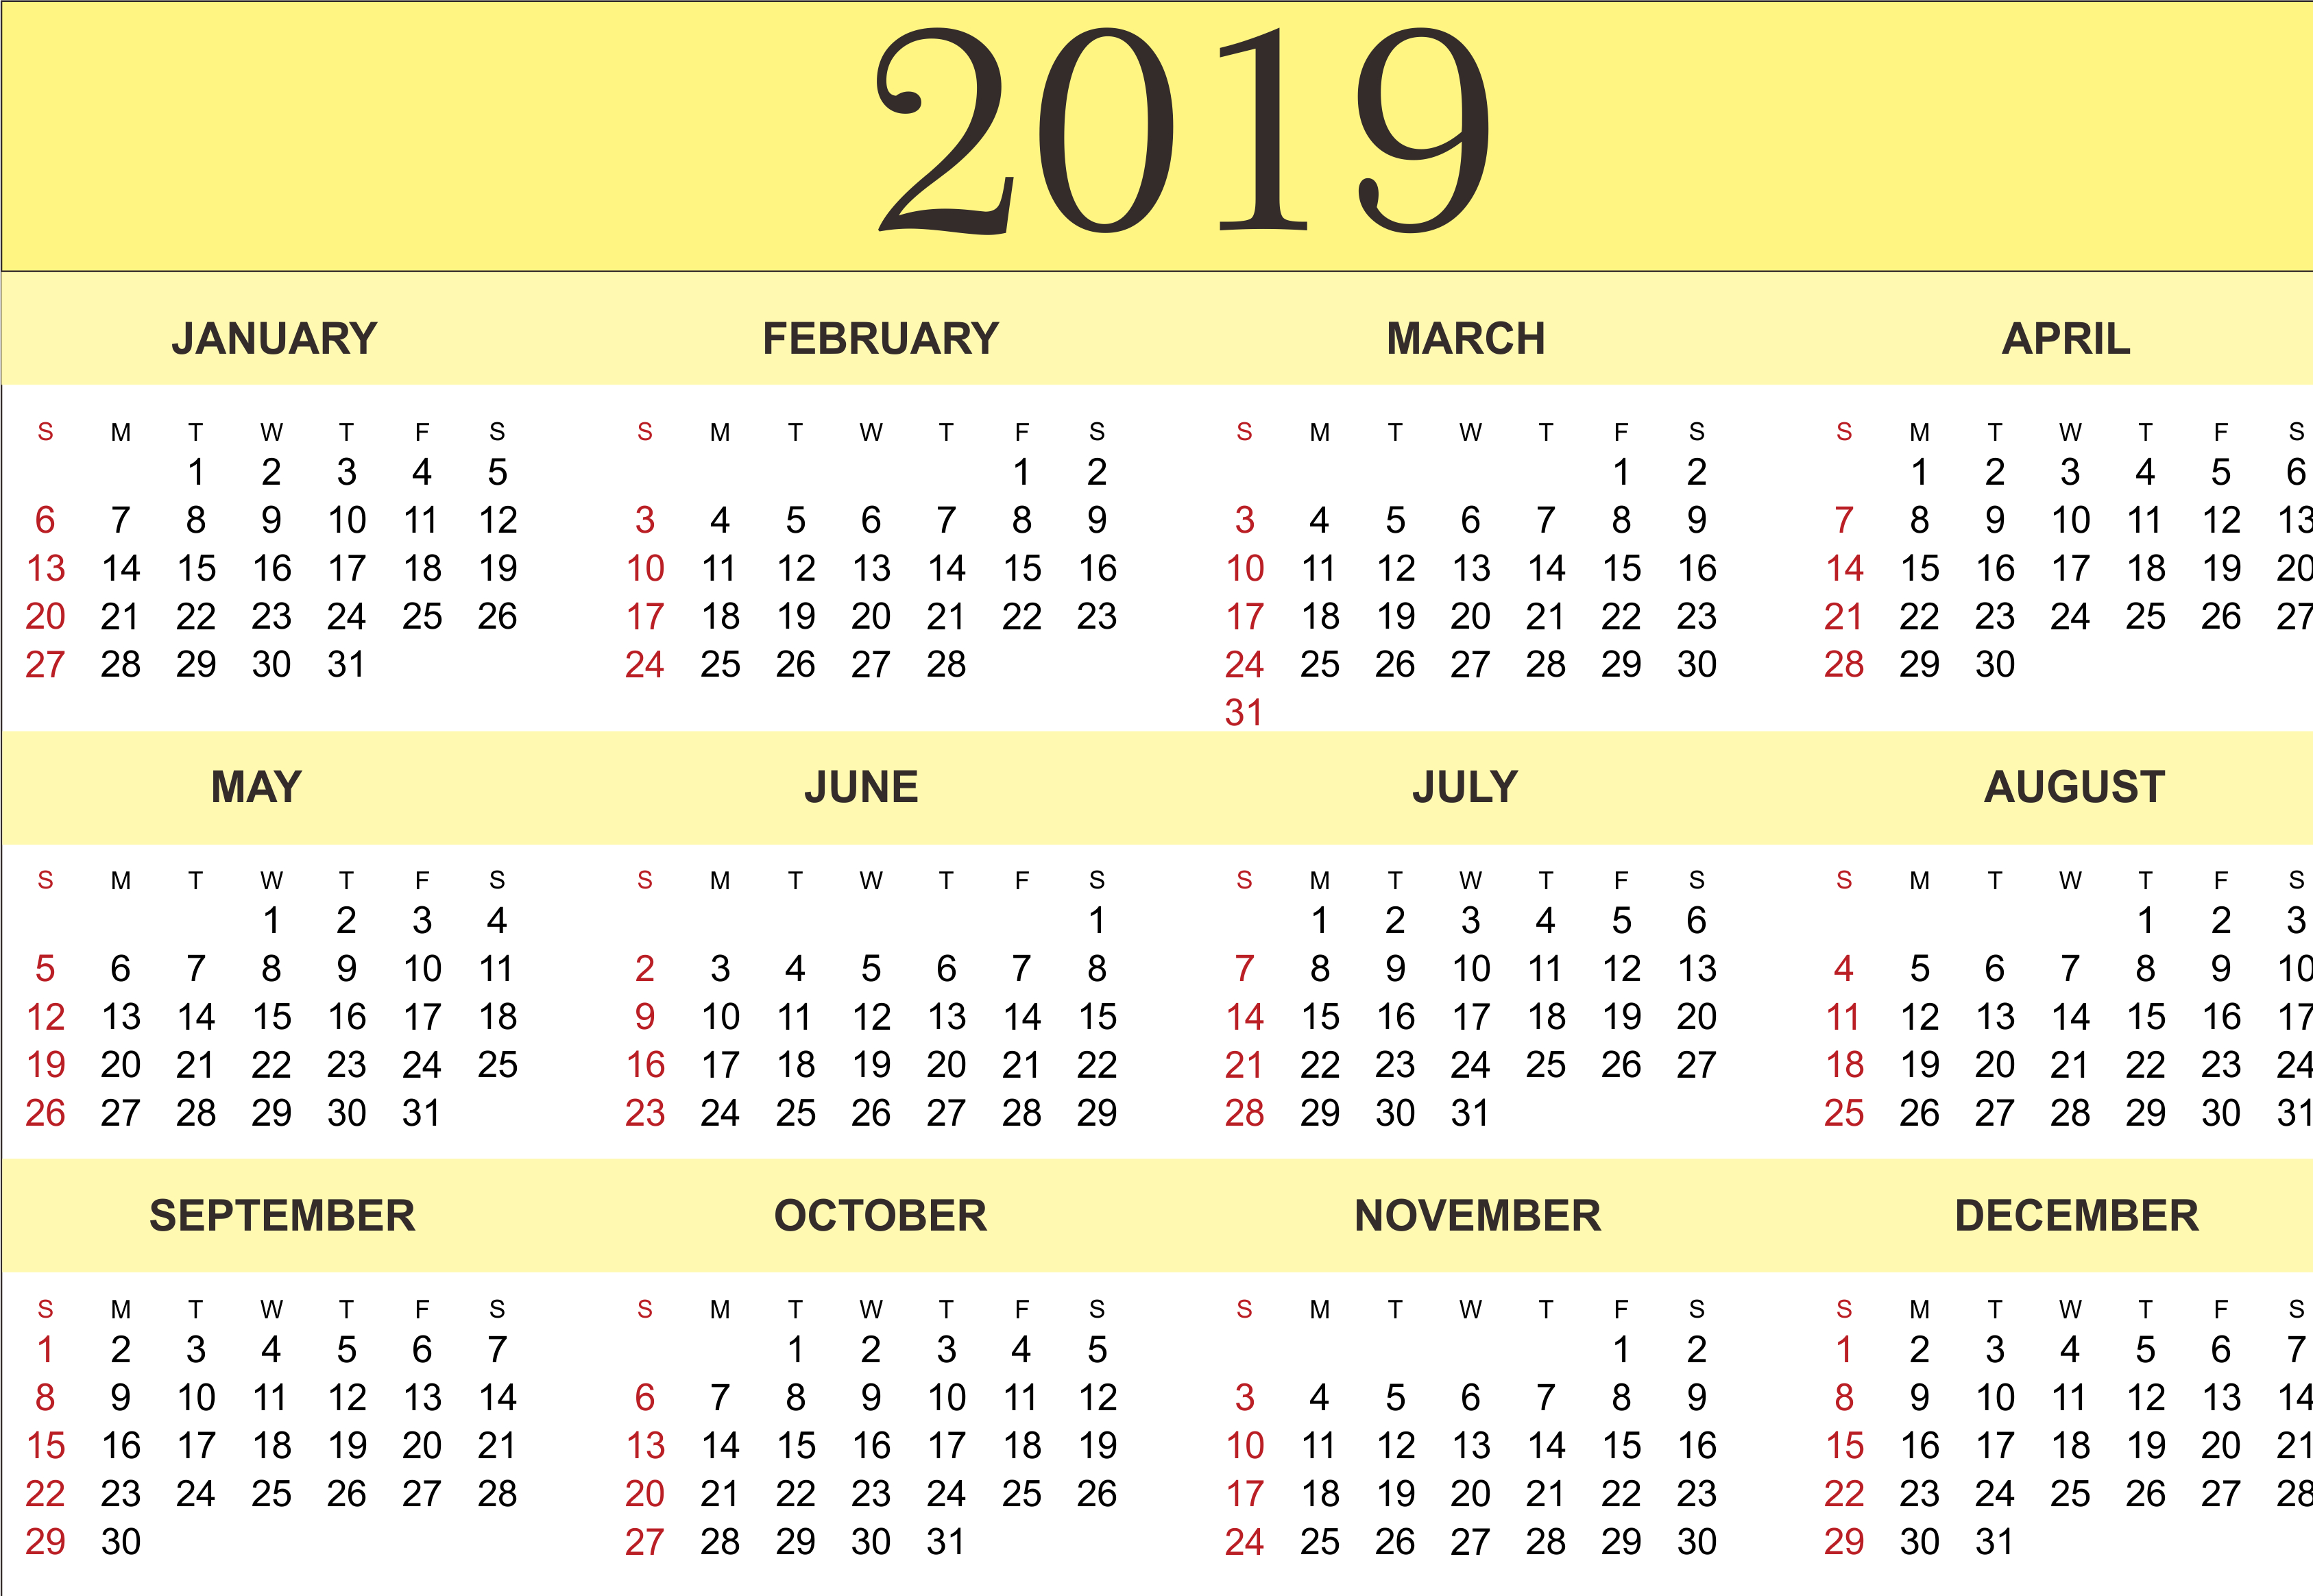 047 Printable Word Sensational 2019 Calendar Free Monthly Template G 2019 Calendar